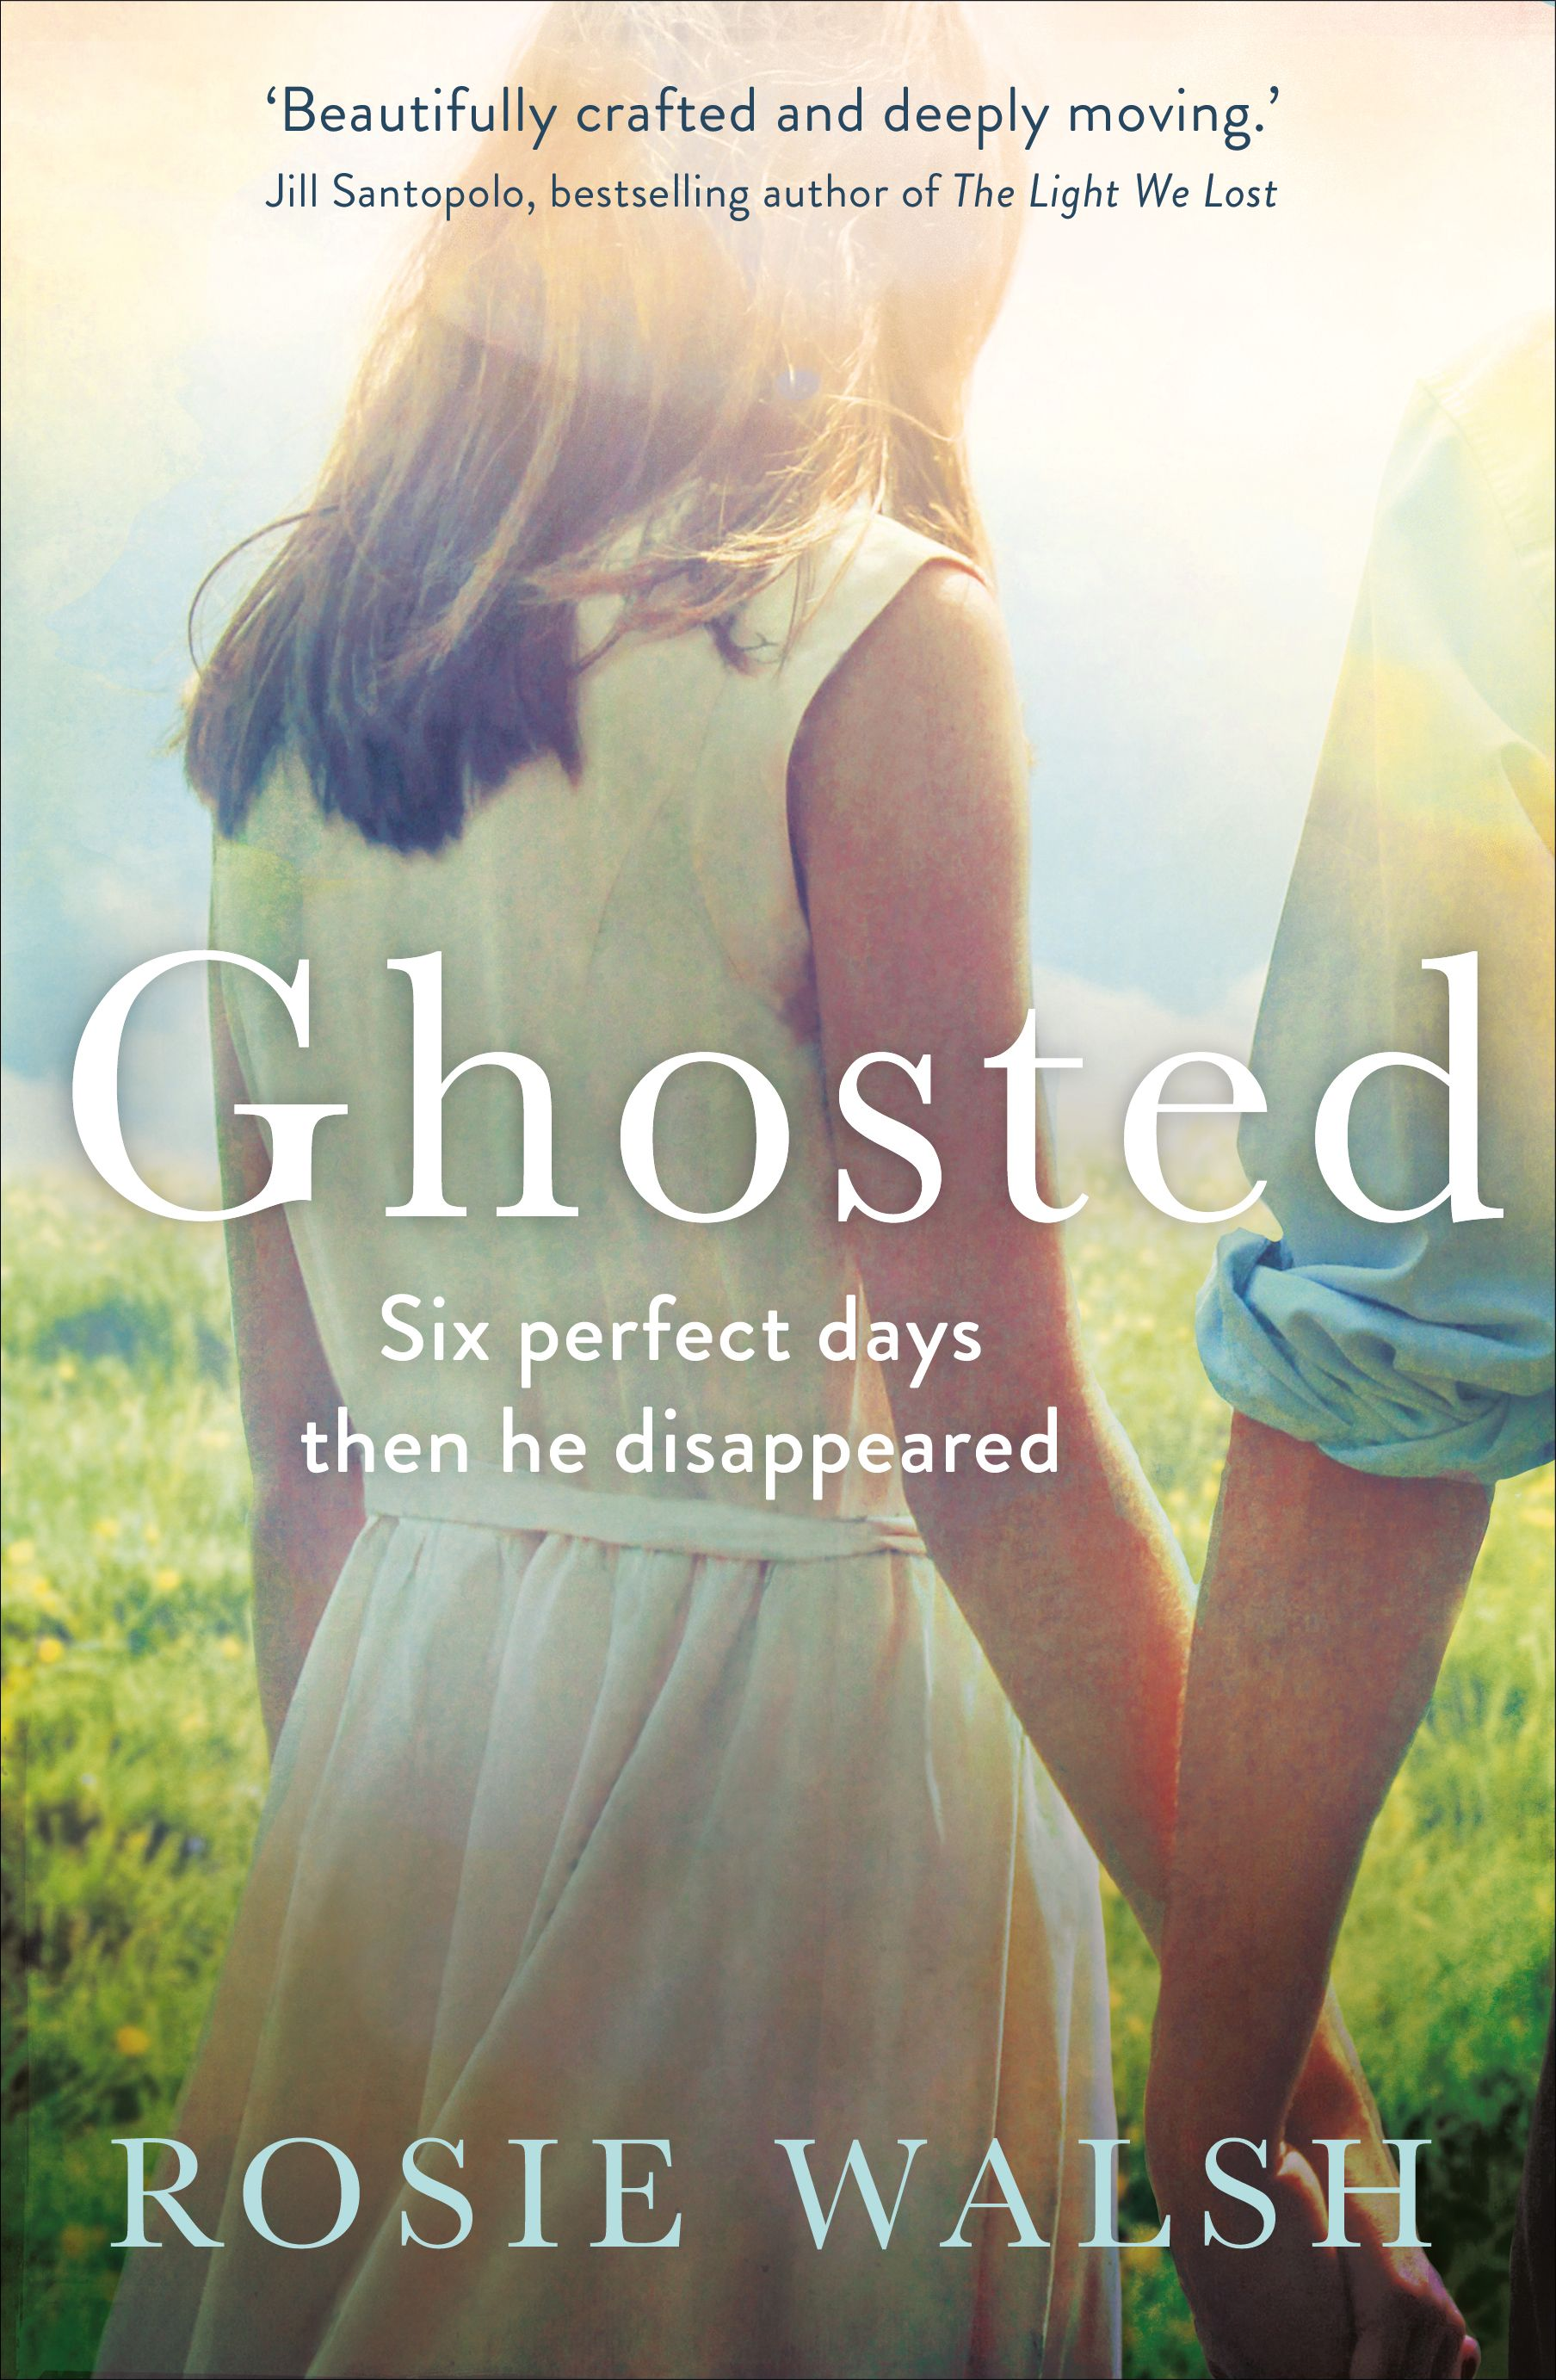 It was the perfect love story… until he disappeared. GHOSTED by Rosie Walsh will be available July 2018!